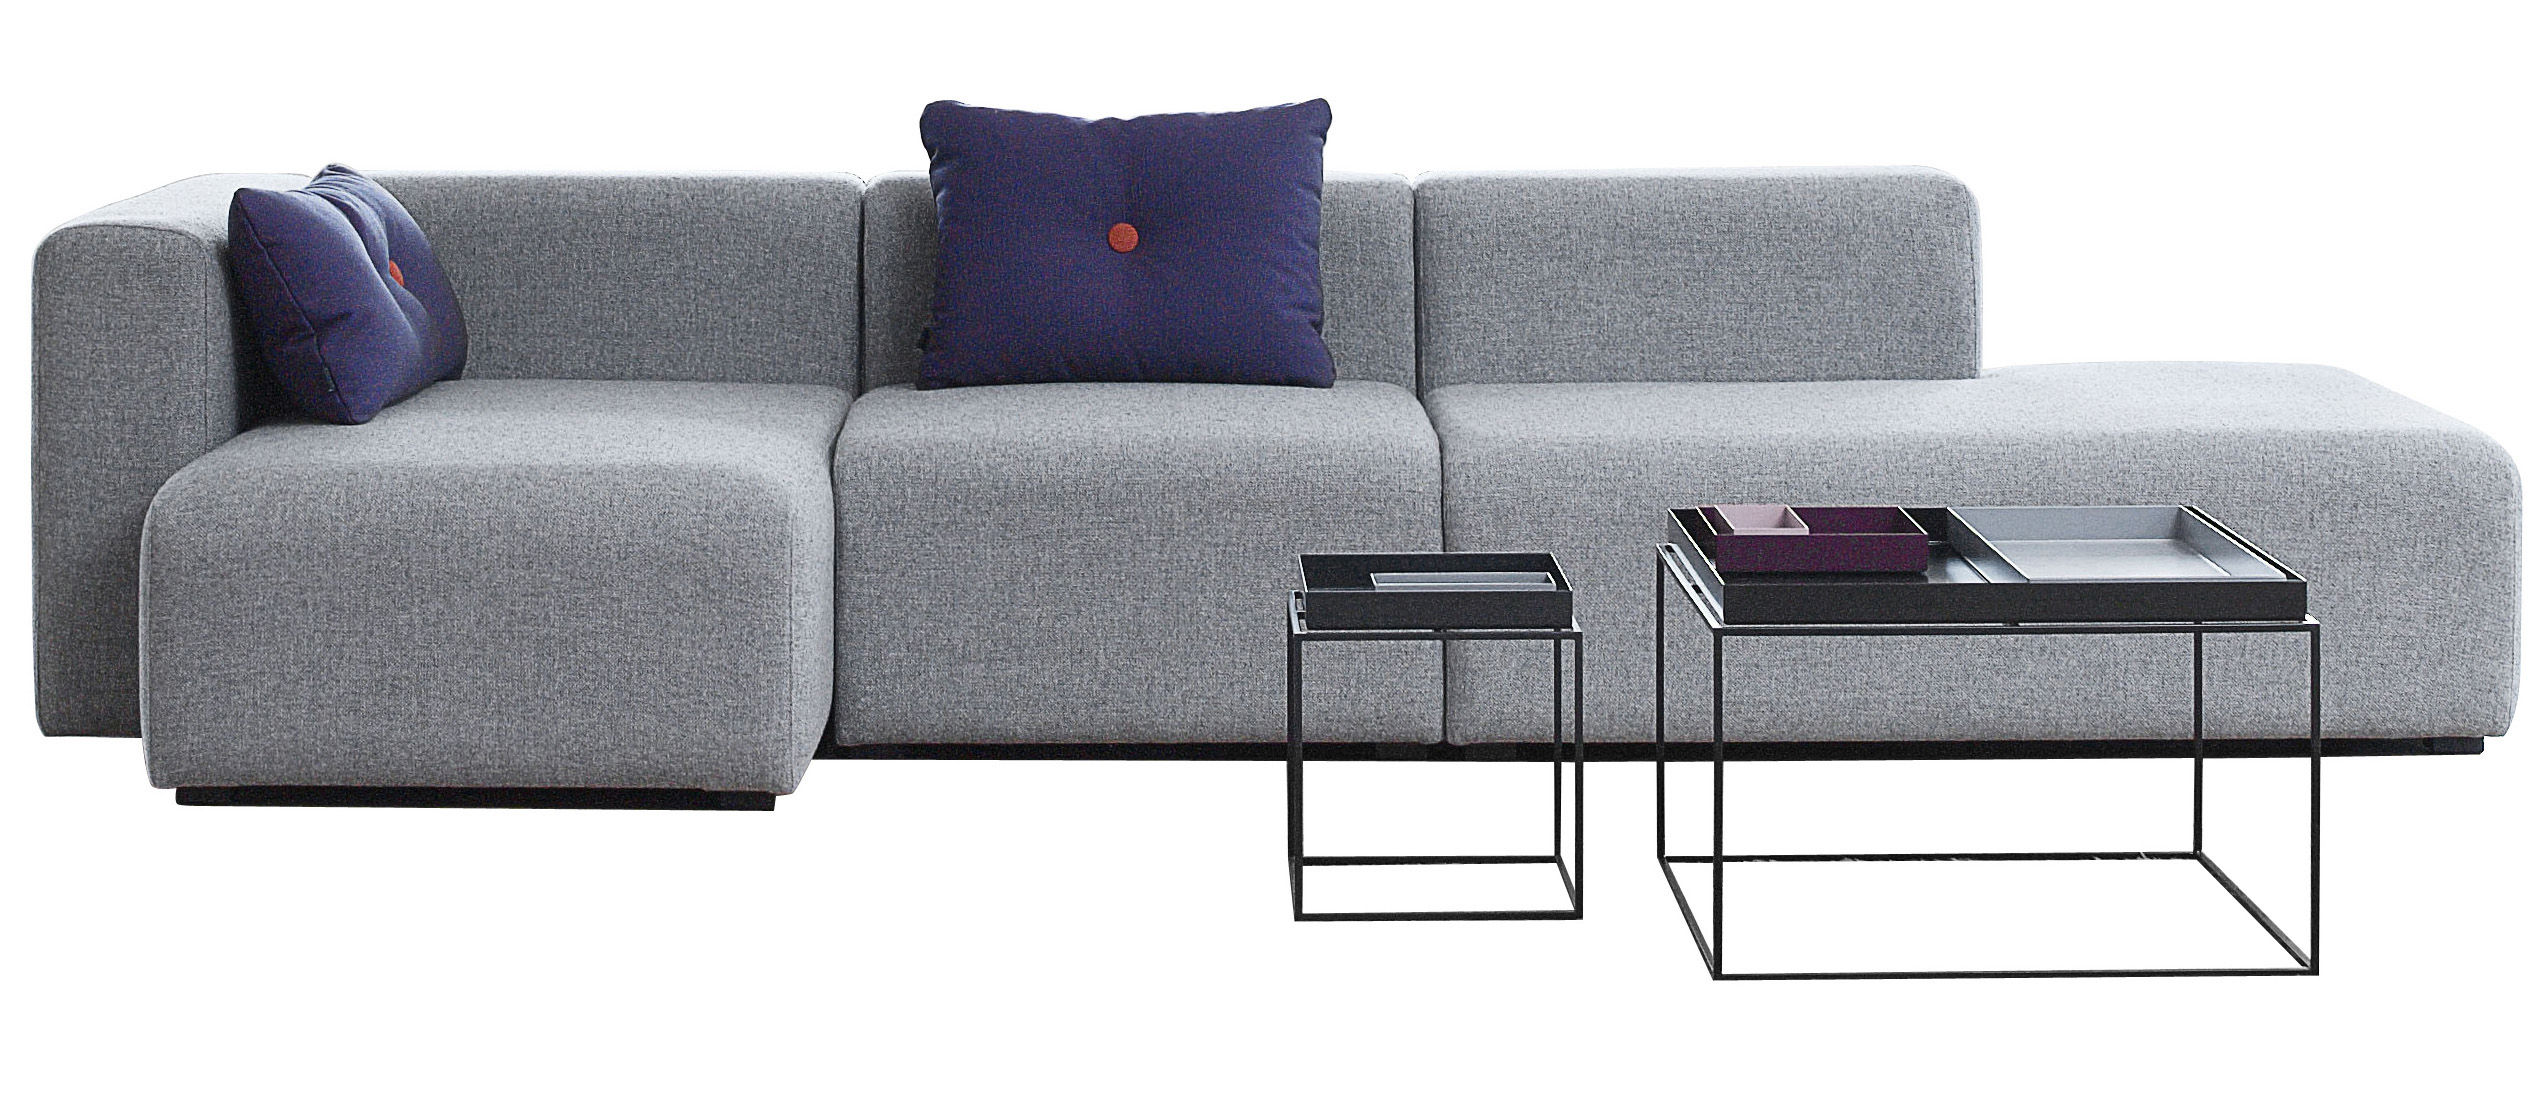 mags corner sofa l 302 cm left armrest light grey left armrest by hay. Black Bedroom Furniture Sets. Home Design Ideas